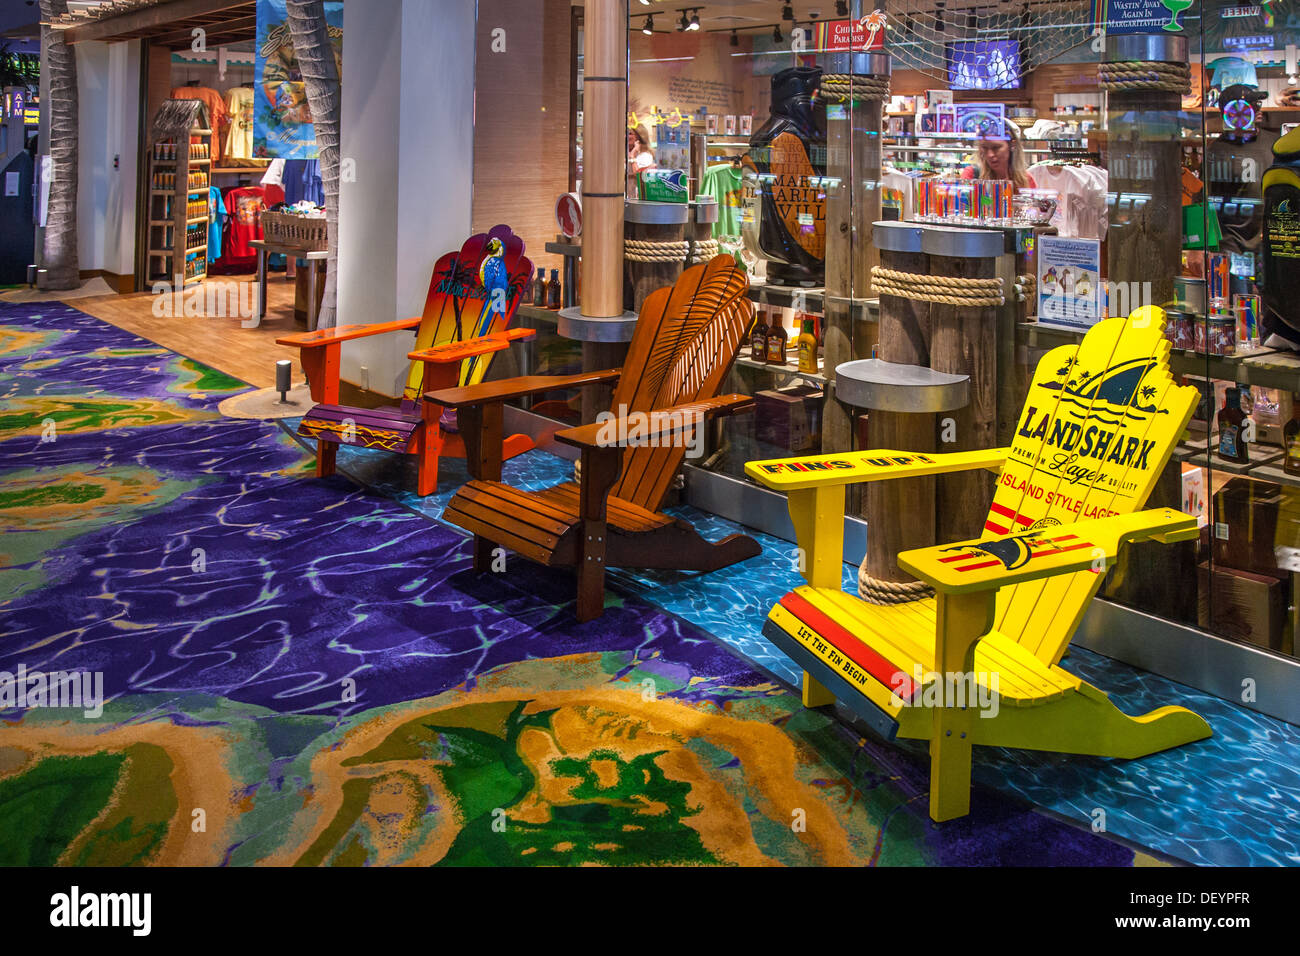 Adirondack Style Wooden Chairs For Sale At Jimmy Buffettu0027s Margaritaville  Casino And Restaurant In Biloxi, MS